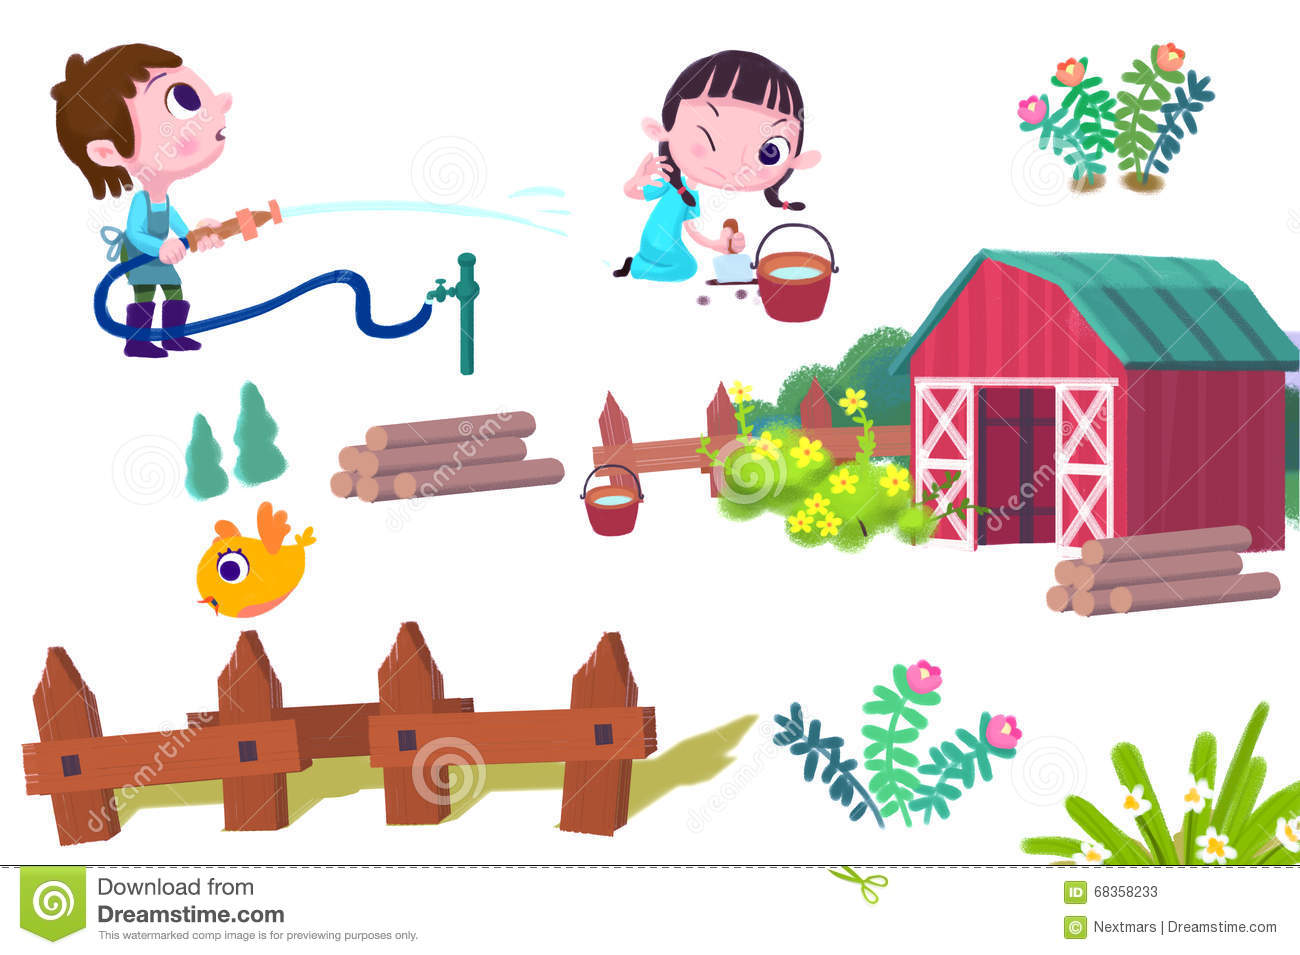 setting fiction and farm house Find old farm house scene stock images in hd and millions of other royalty-free stock photos, illustrations, and vectors in the shutterstock collection thousands of.